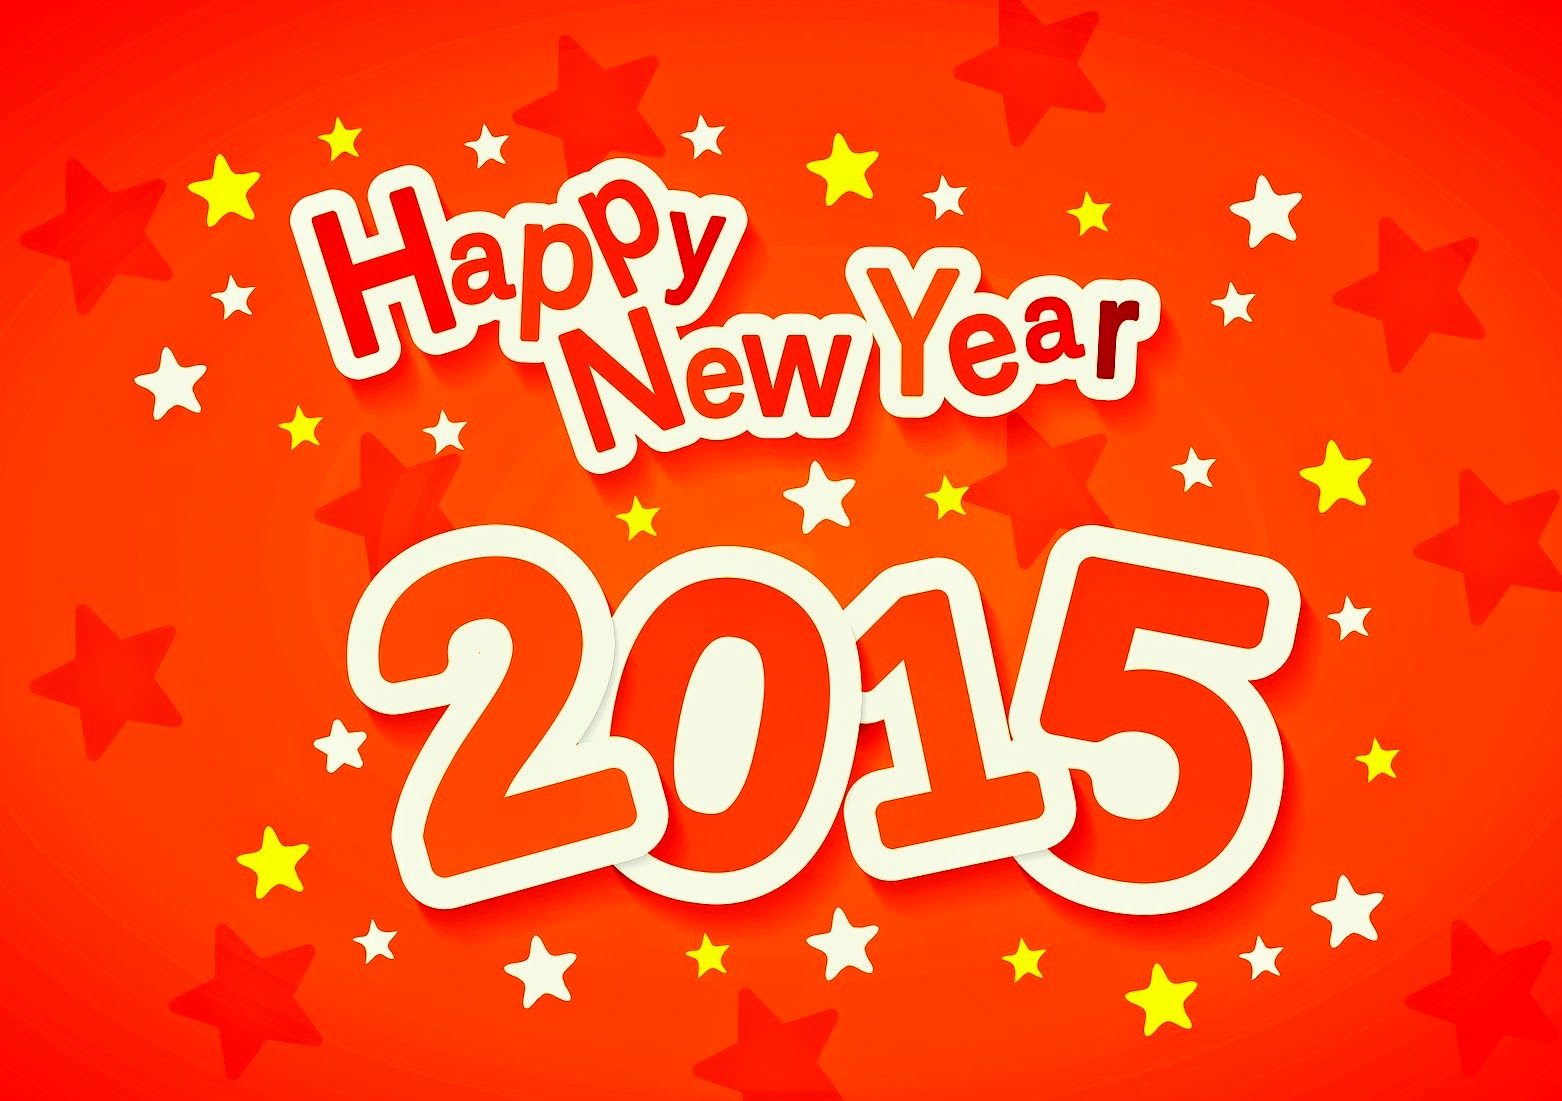 Happy new year 2015 wallpaper happy new year 2015 kristyandbryce Image collections